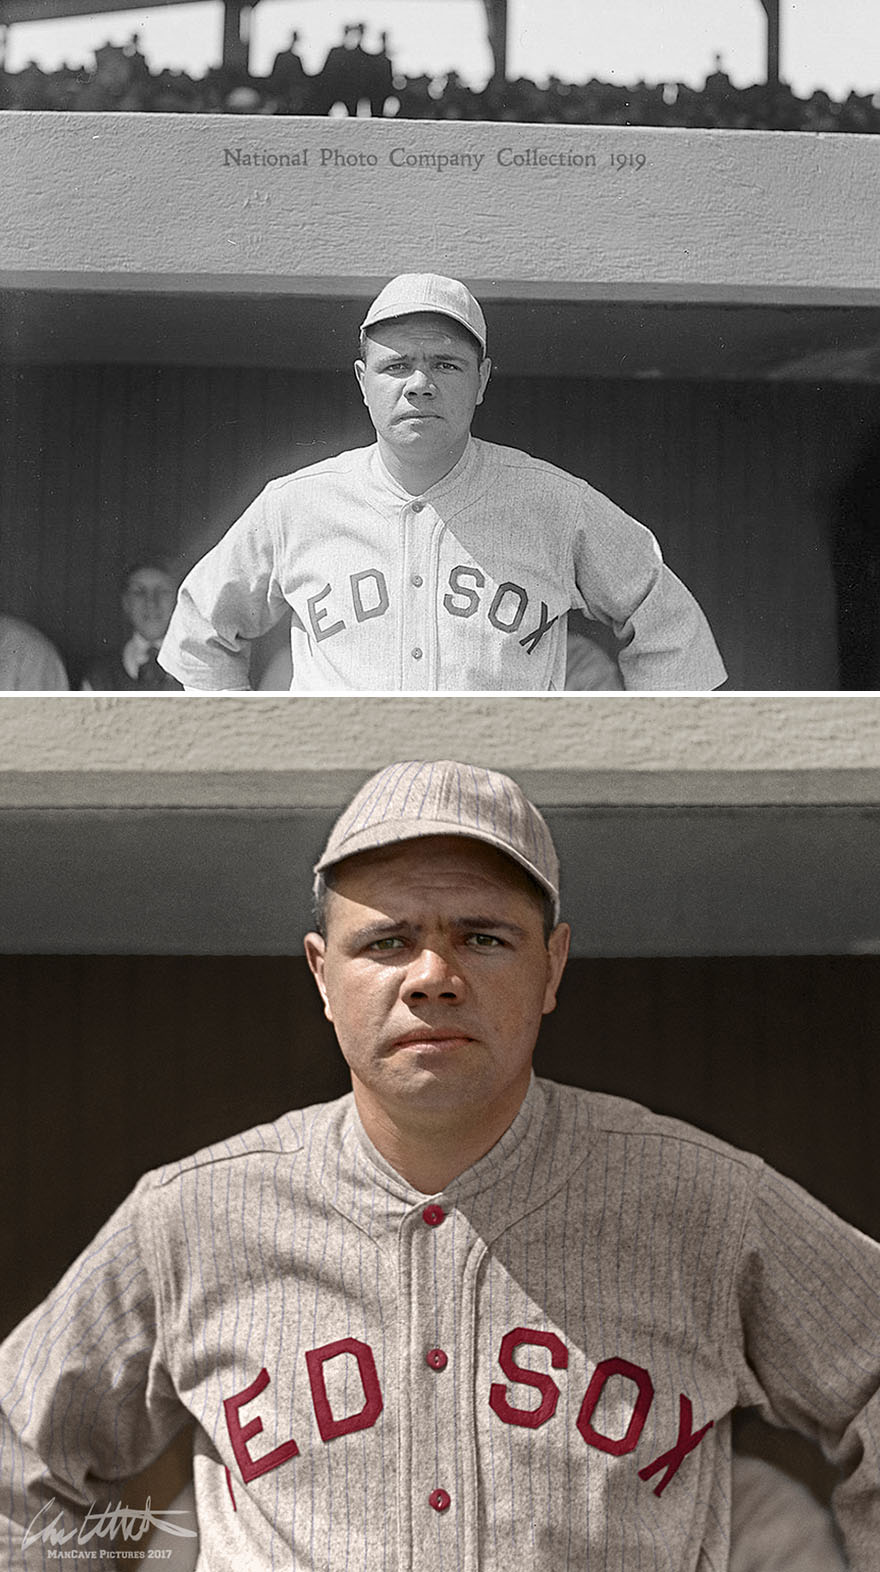 Babe Ruth. Boston Red Sox, 1919